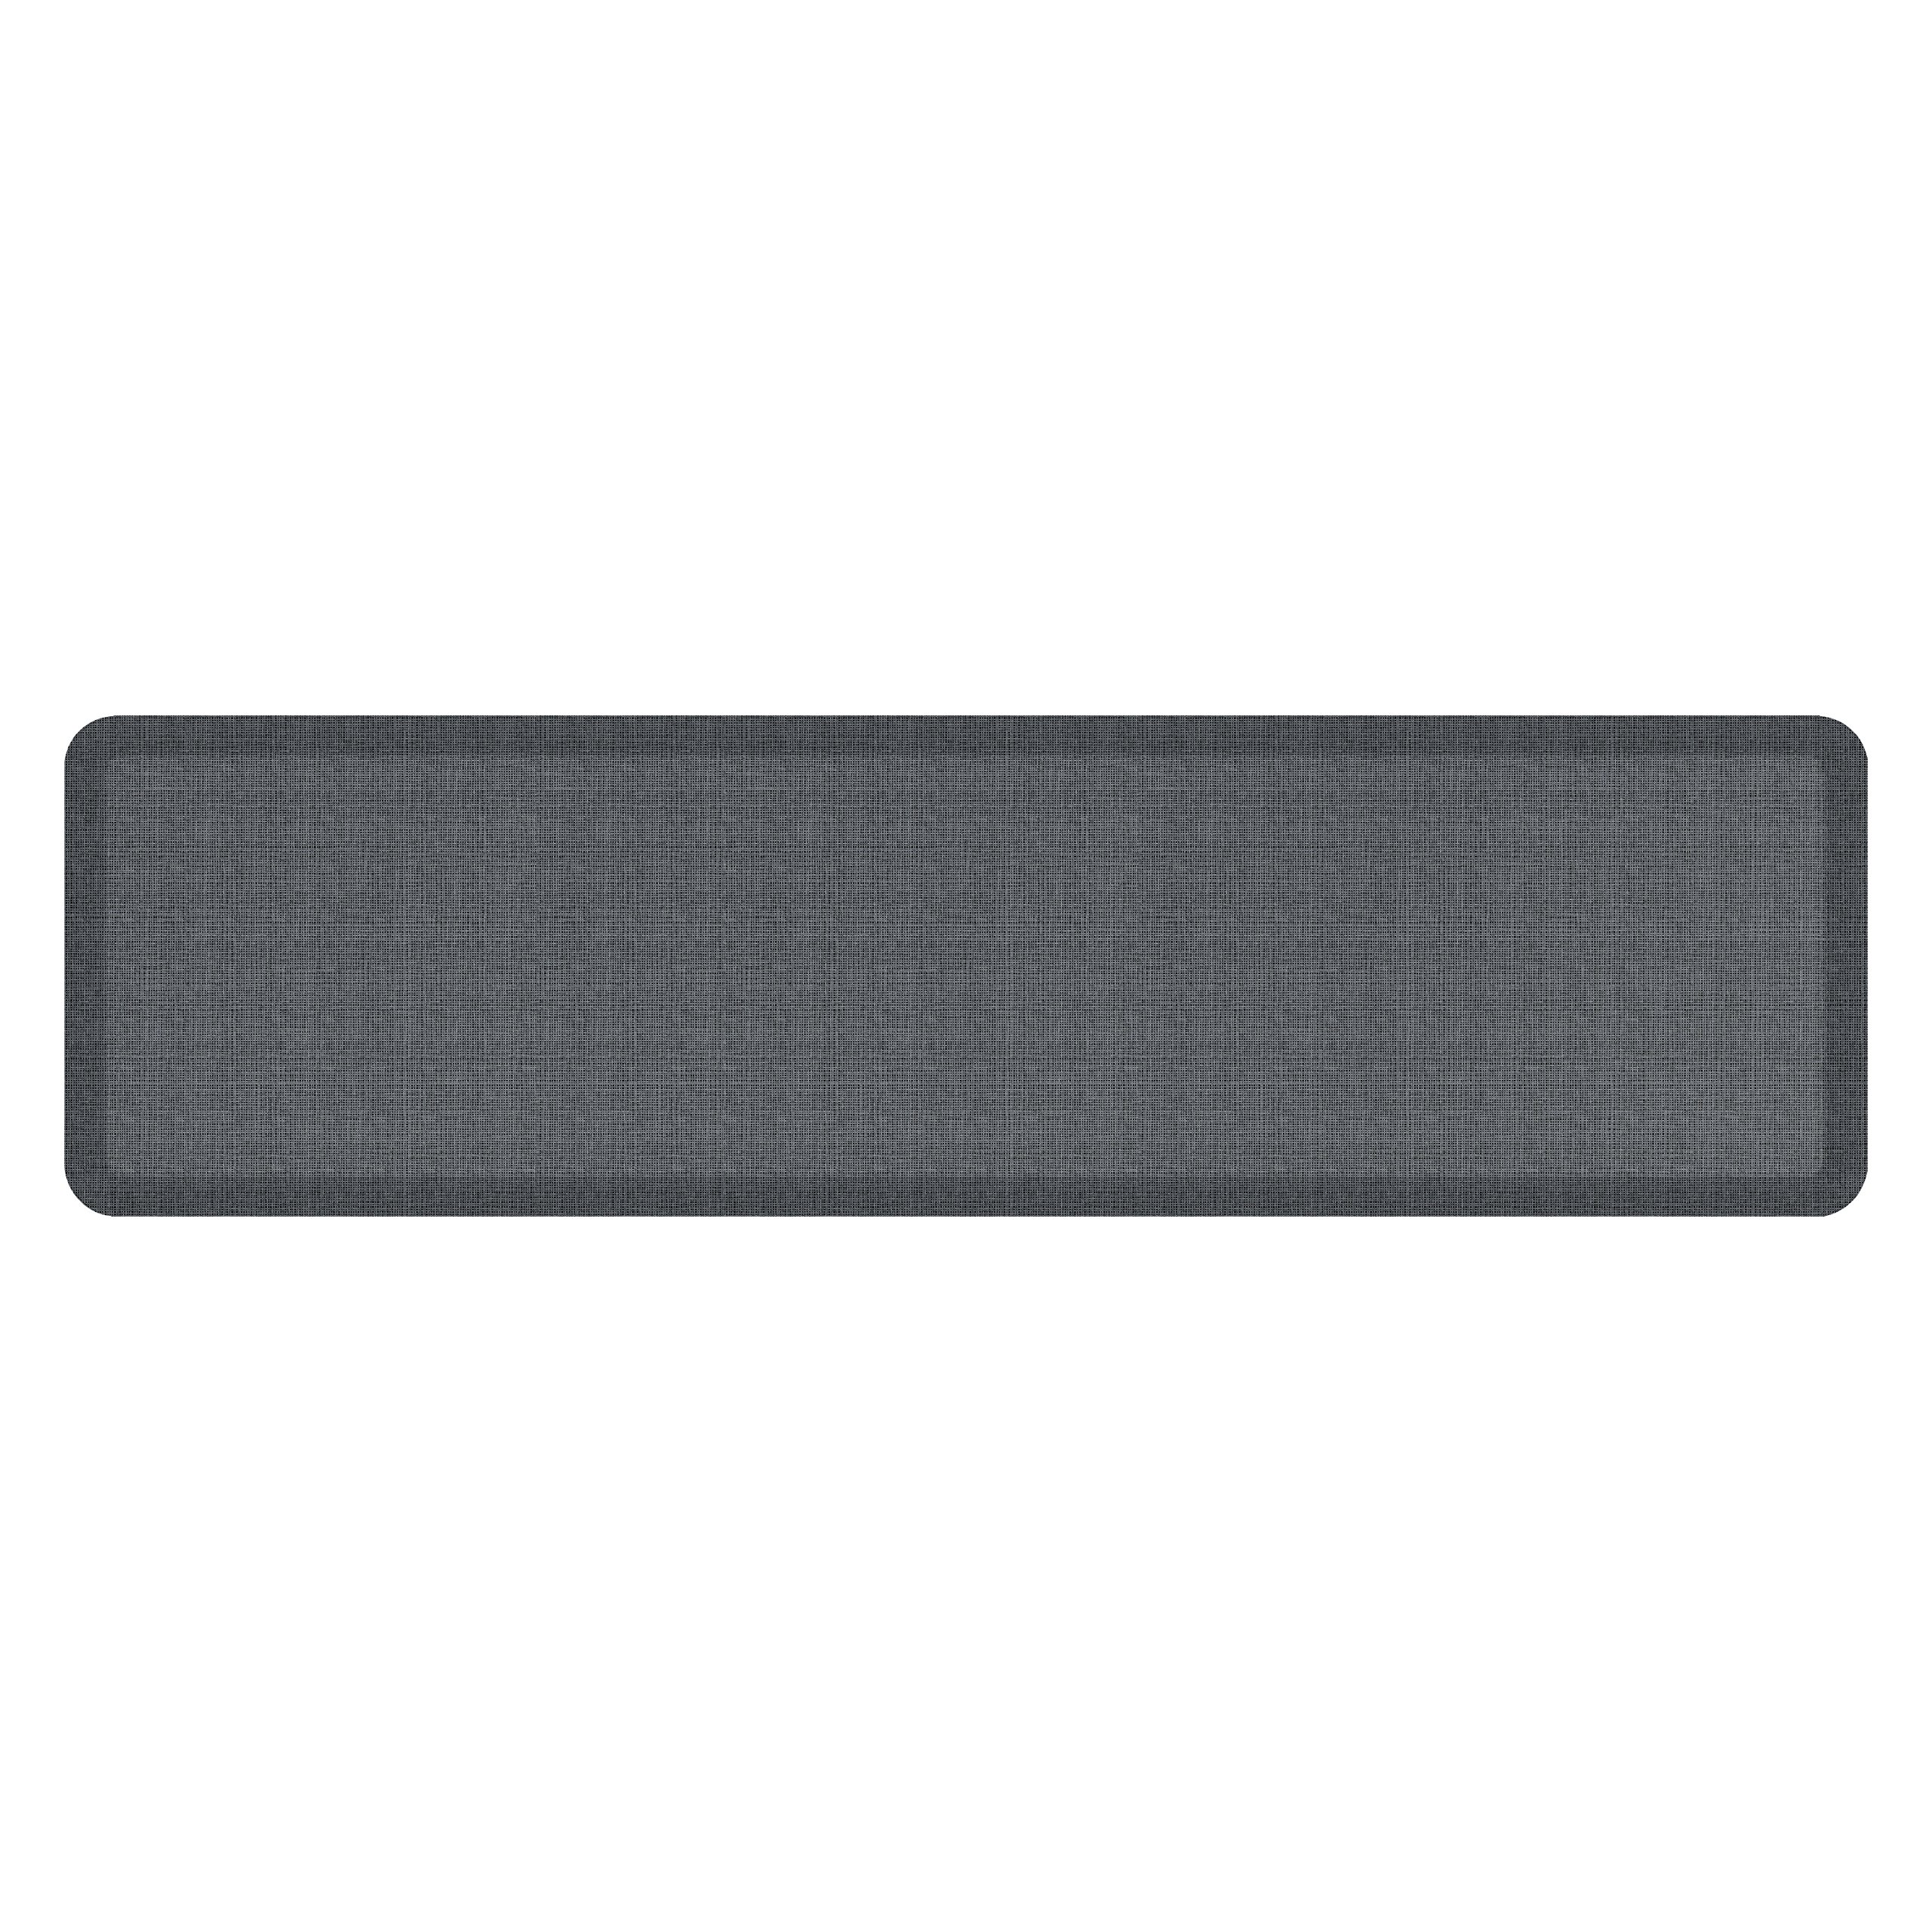 "NewLife by GelPro Anti-Fatigue Designer Comfort Kitchen Floor Mat, 20x72'', Tweed Nickel Grey Stain Resistant Surface with 3/4"" Thick Ergo-foam Core for Health and Wellness"